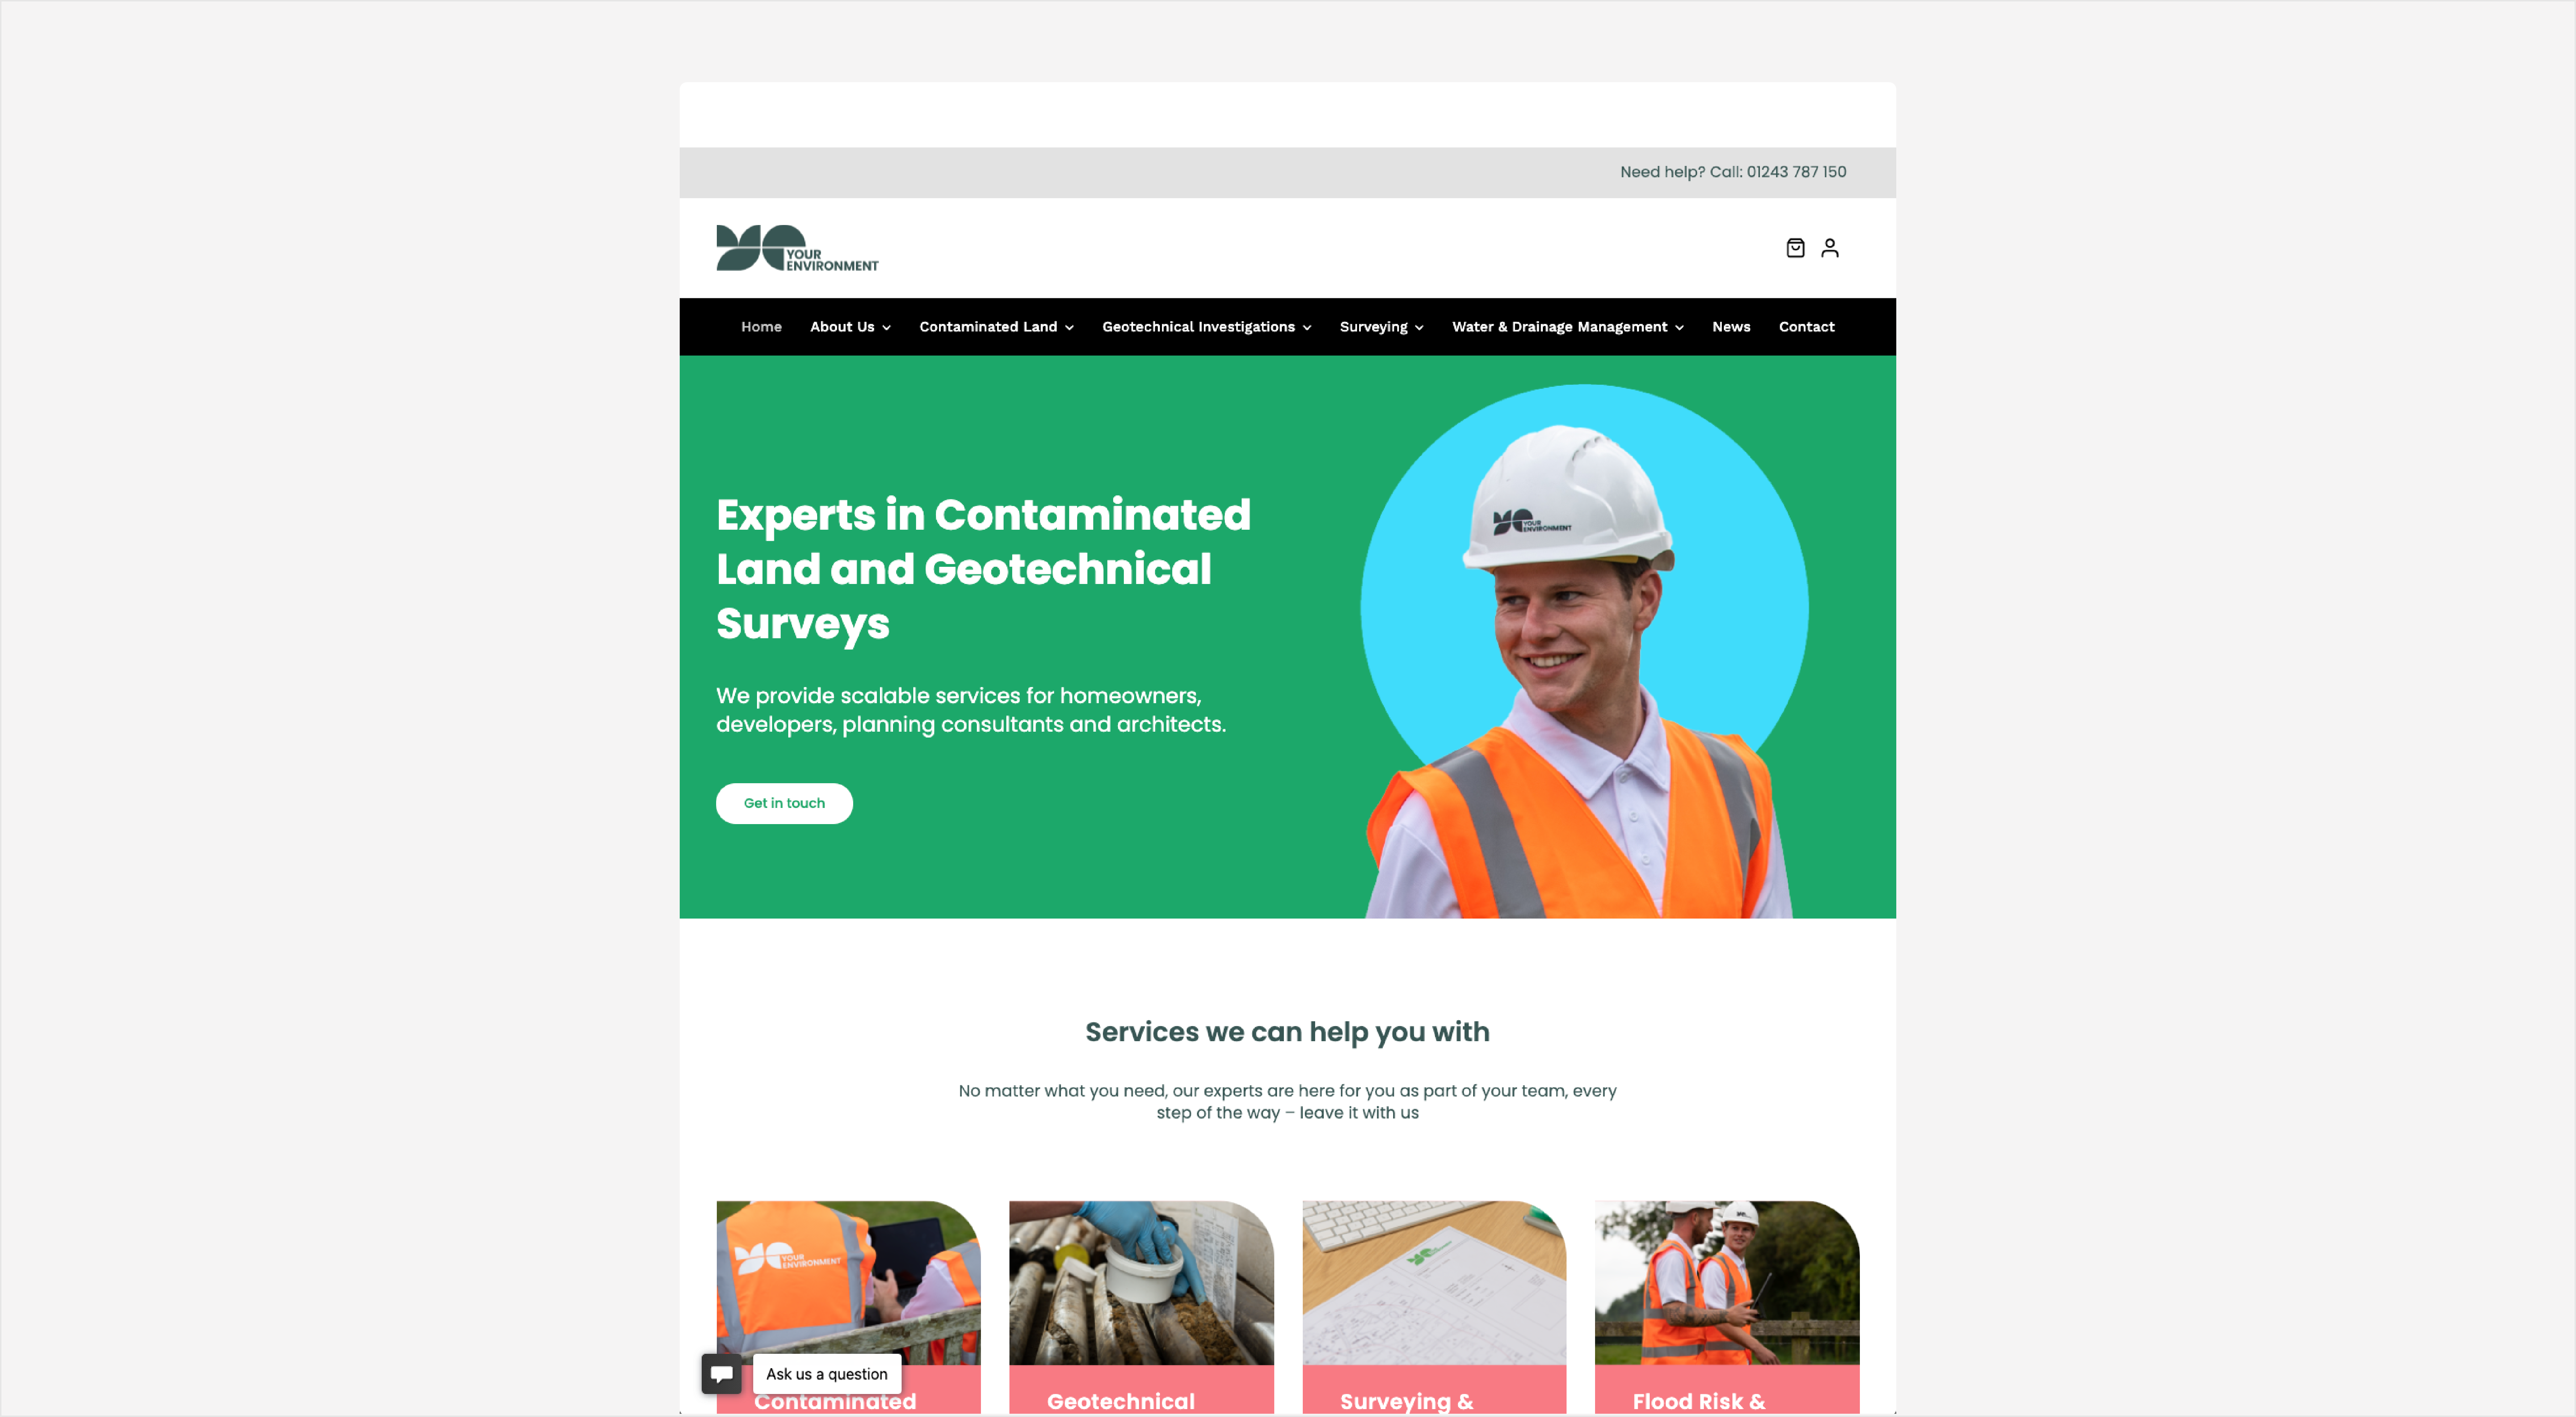 StudioLWD launches complete brand refresh for Your Environment